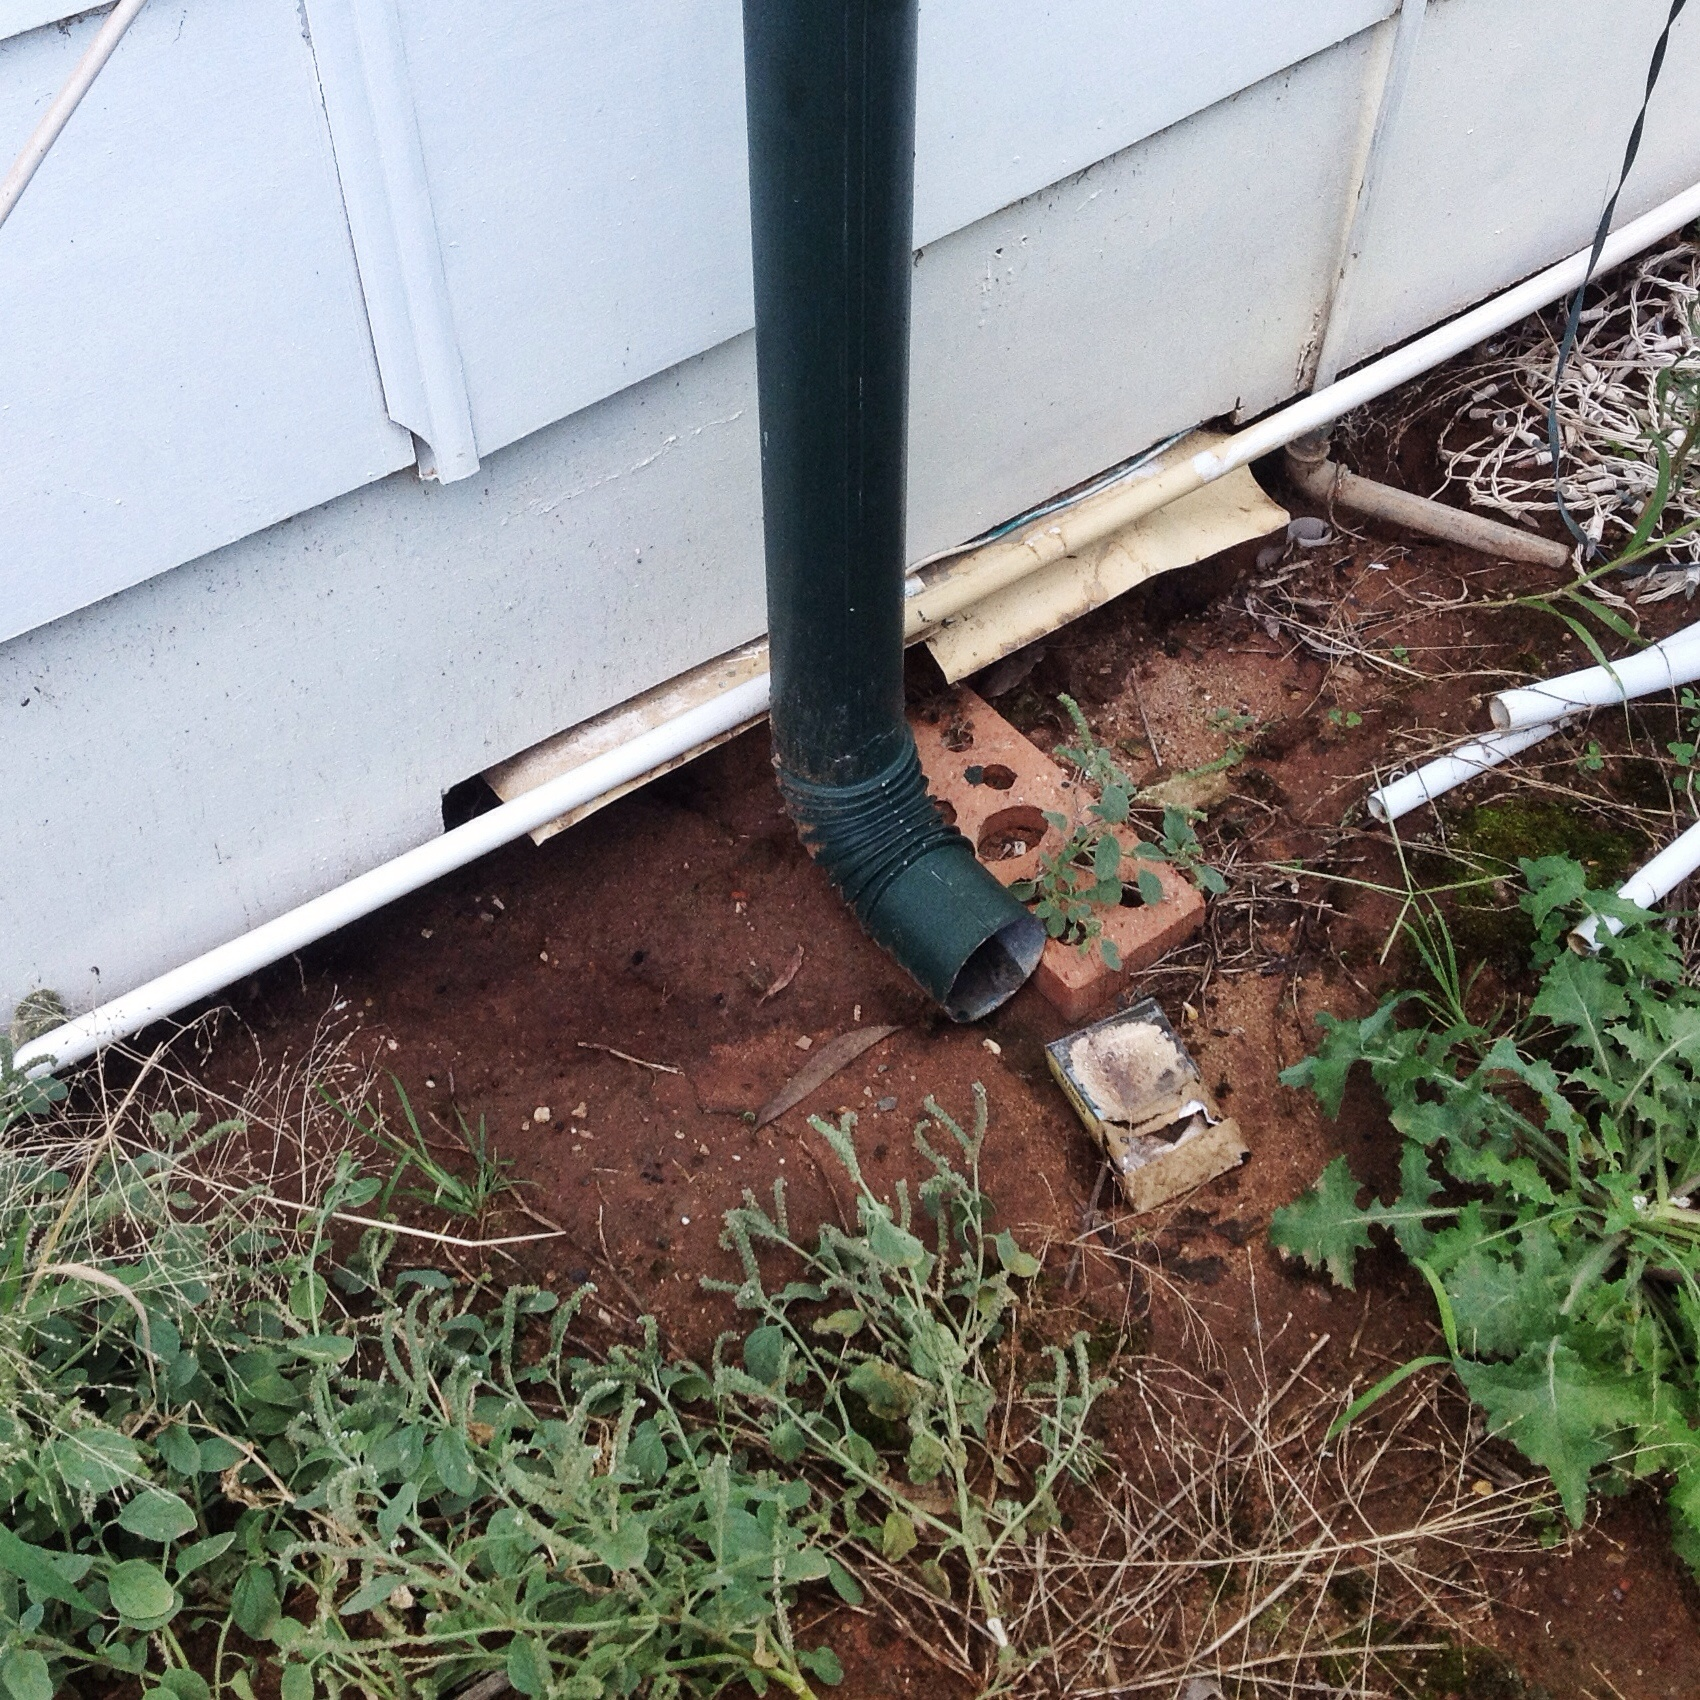 A downpipe draining against a building, it's like a pub with free beer for termites!